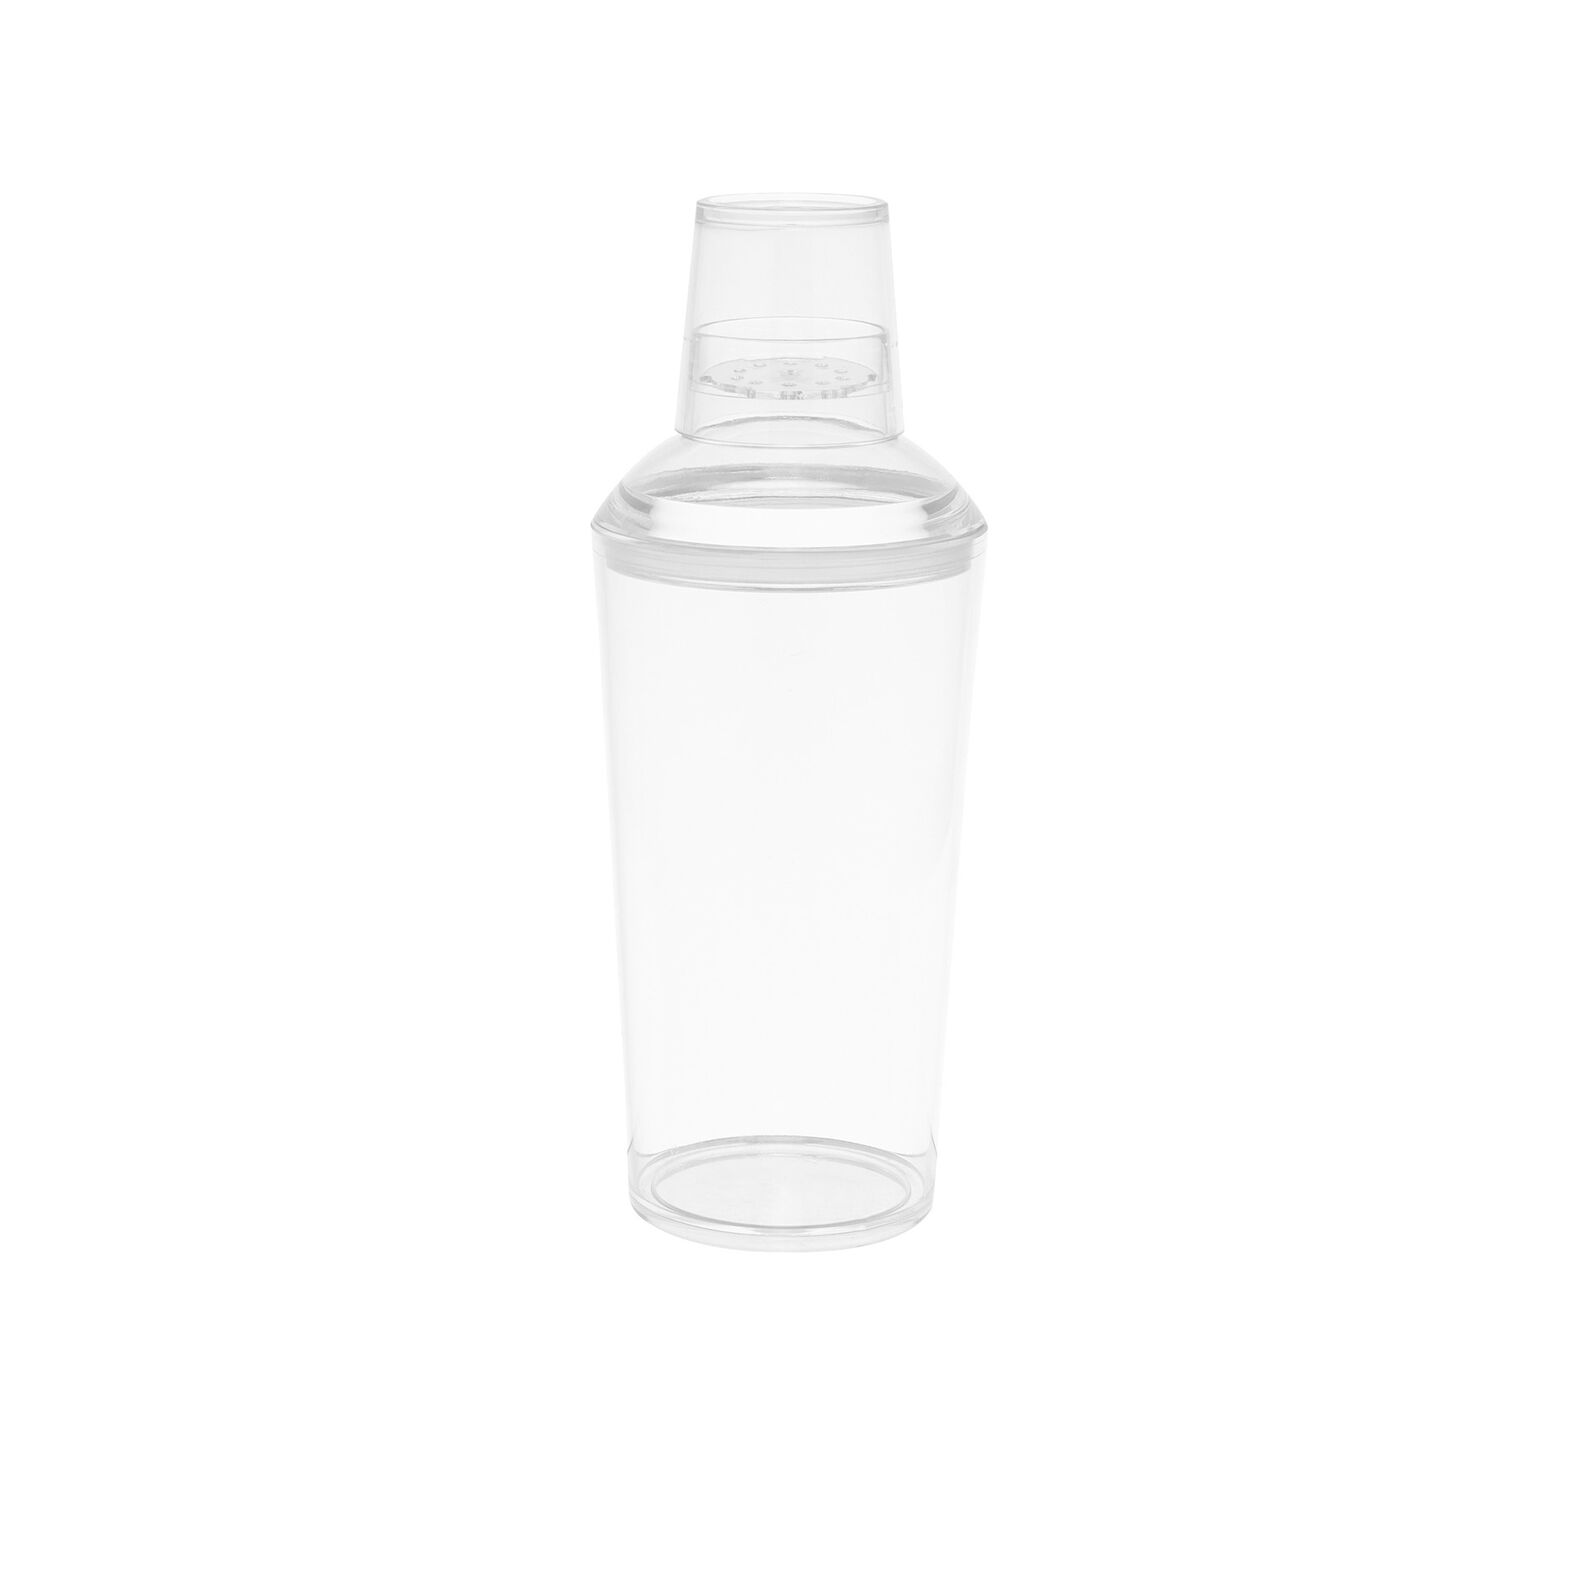 MS plastic cocktail shaker